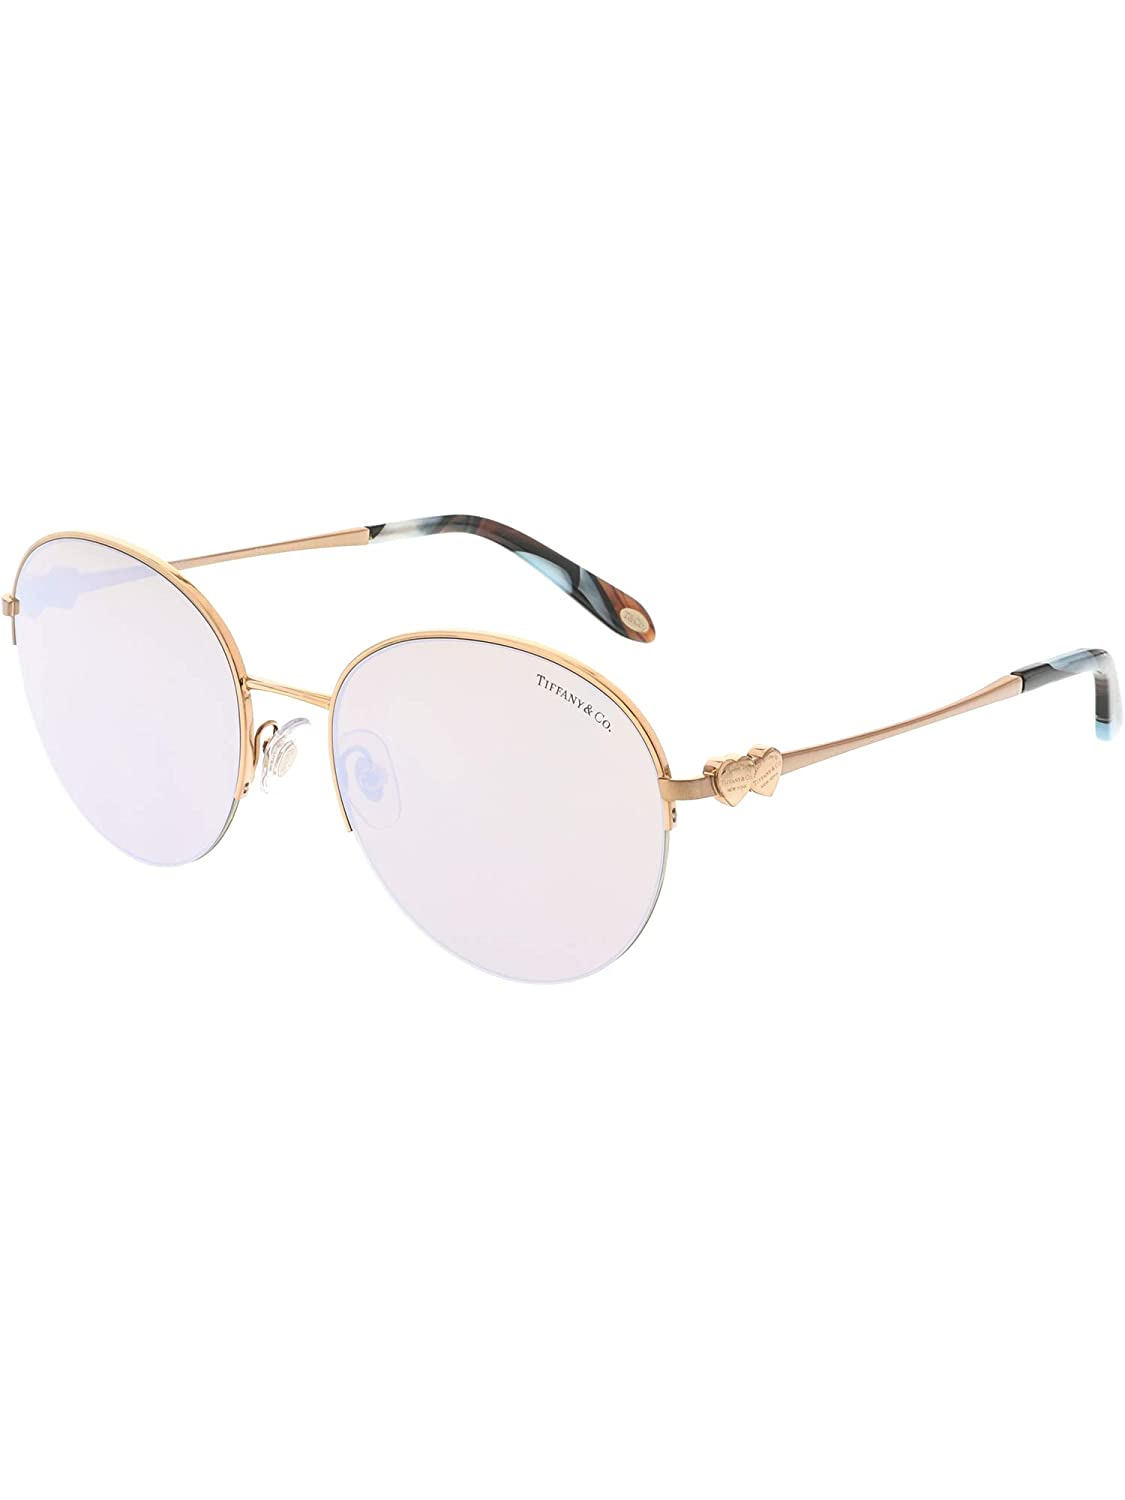 c996df75b4a6 Tiffany and Co. Round Sunglasses TF3053 610964 Bronze Copper Frame with  Brown Mirror White Lenses at Amazon Women s Clothing store